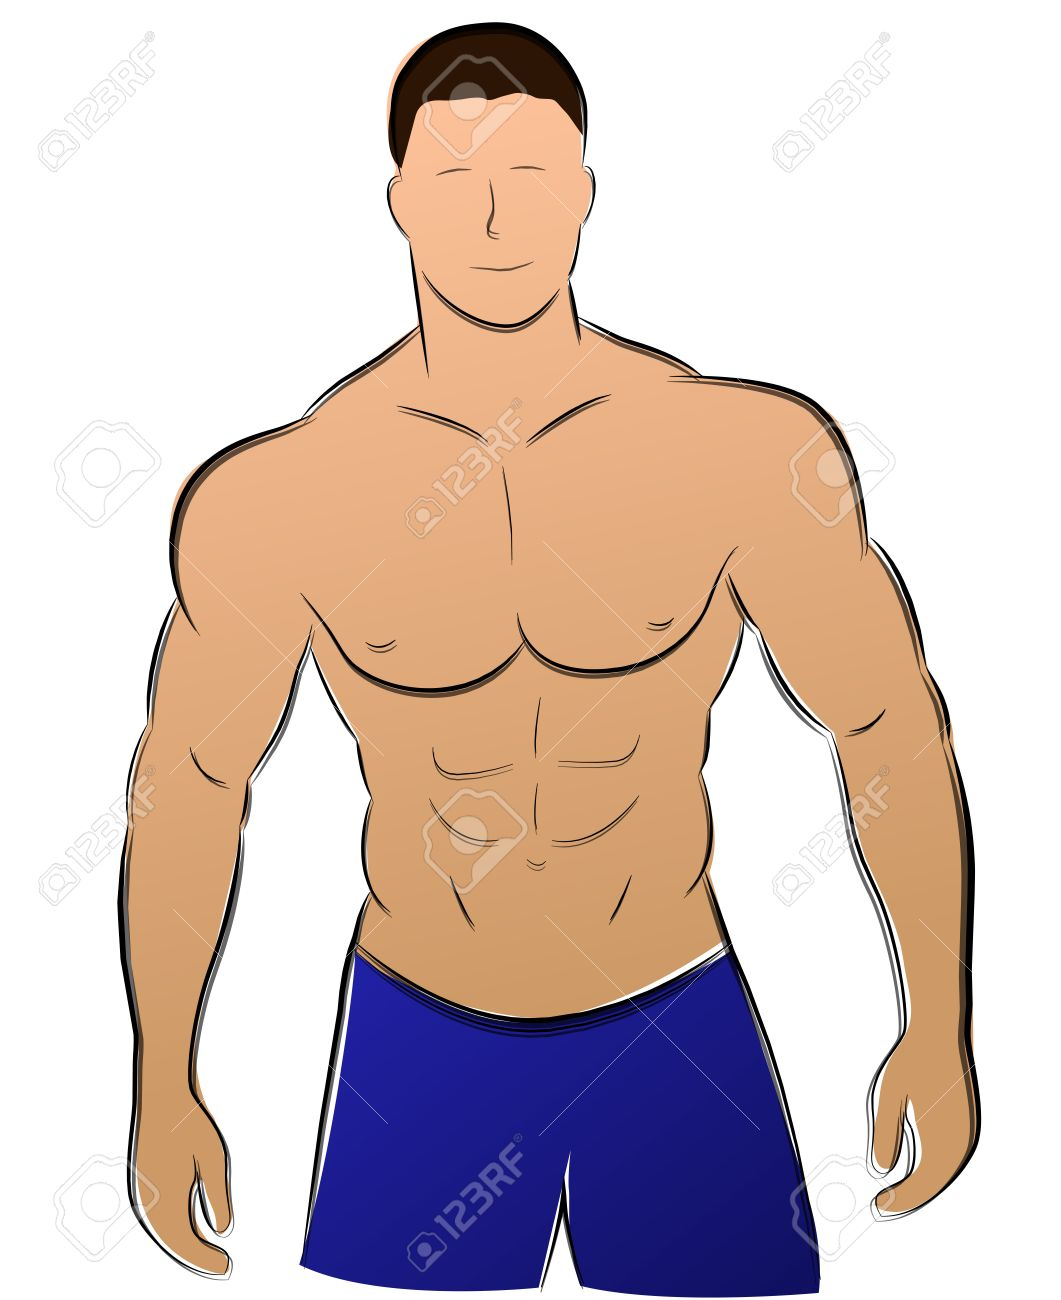 1061x1300 Illustration Of Muscle Man Drawing On White Background Royalty